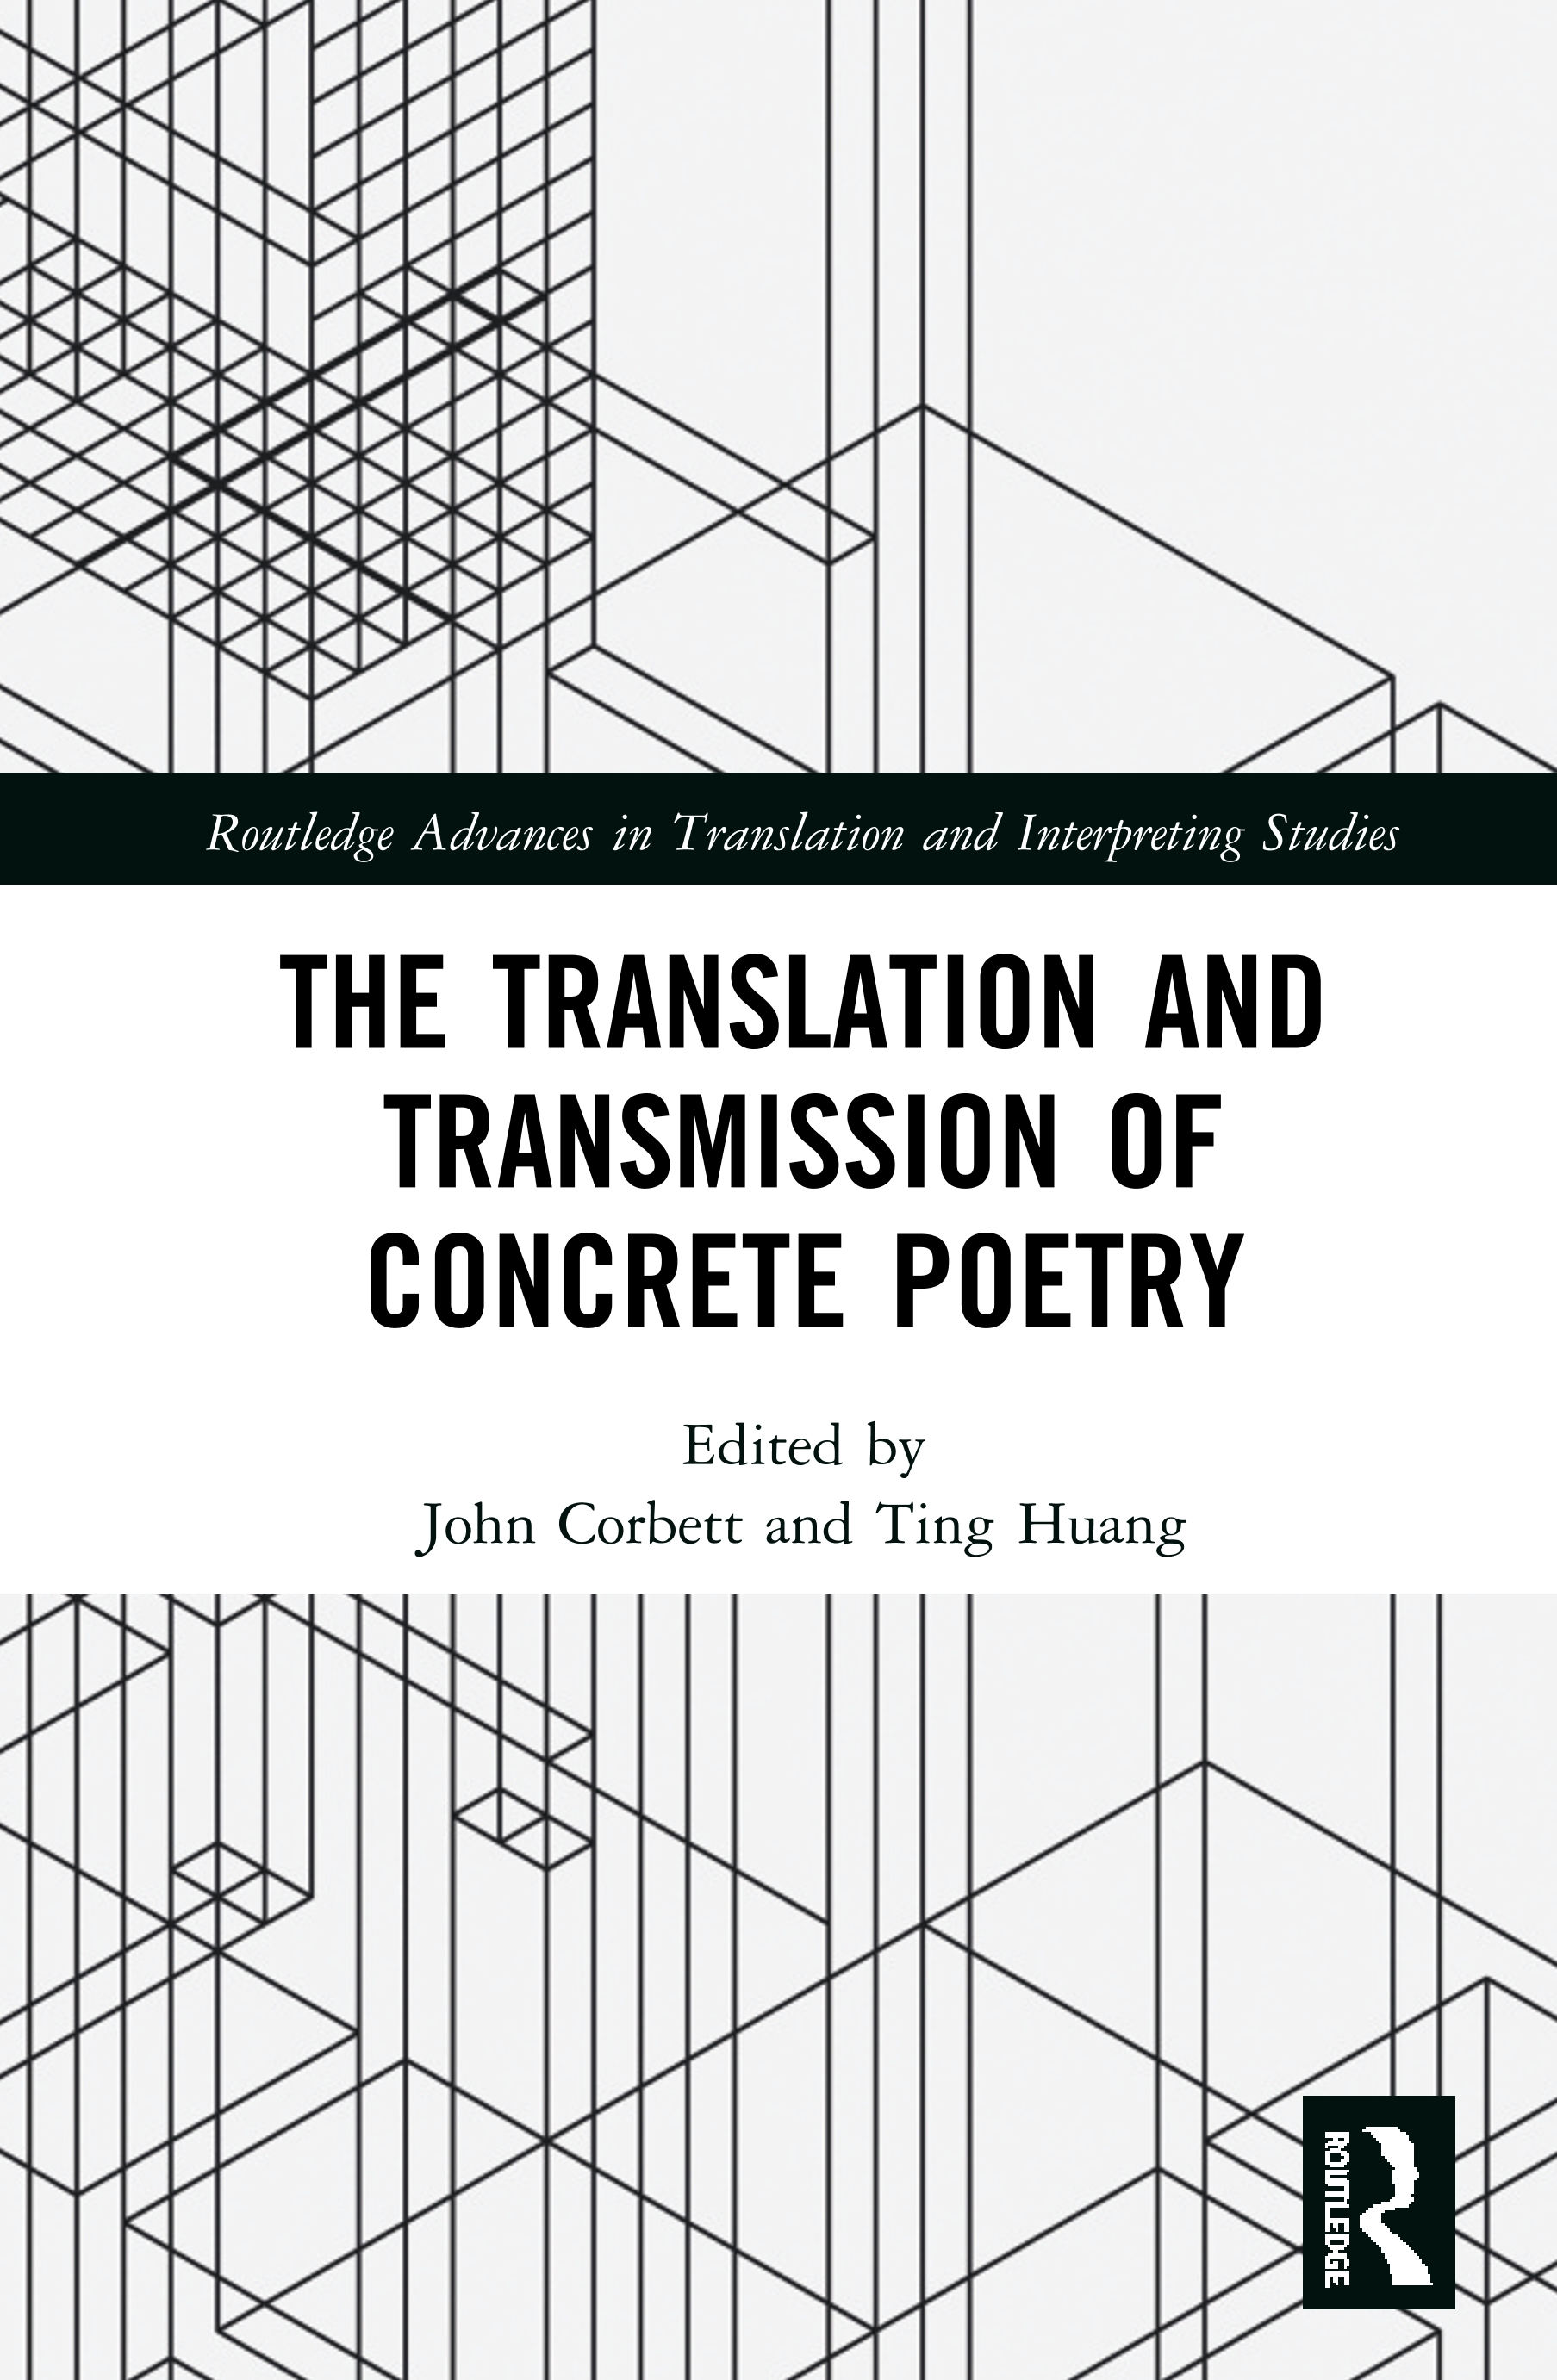 The Translation and Transmission of Concrete Poetry book cover